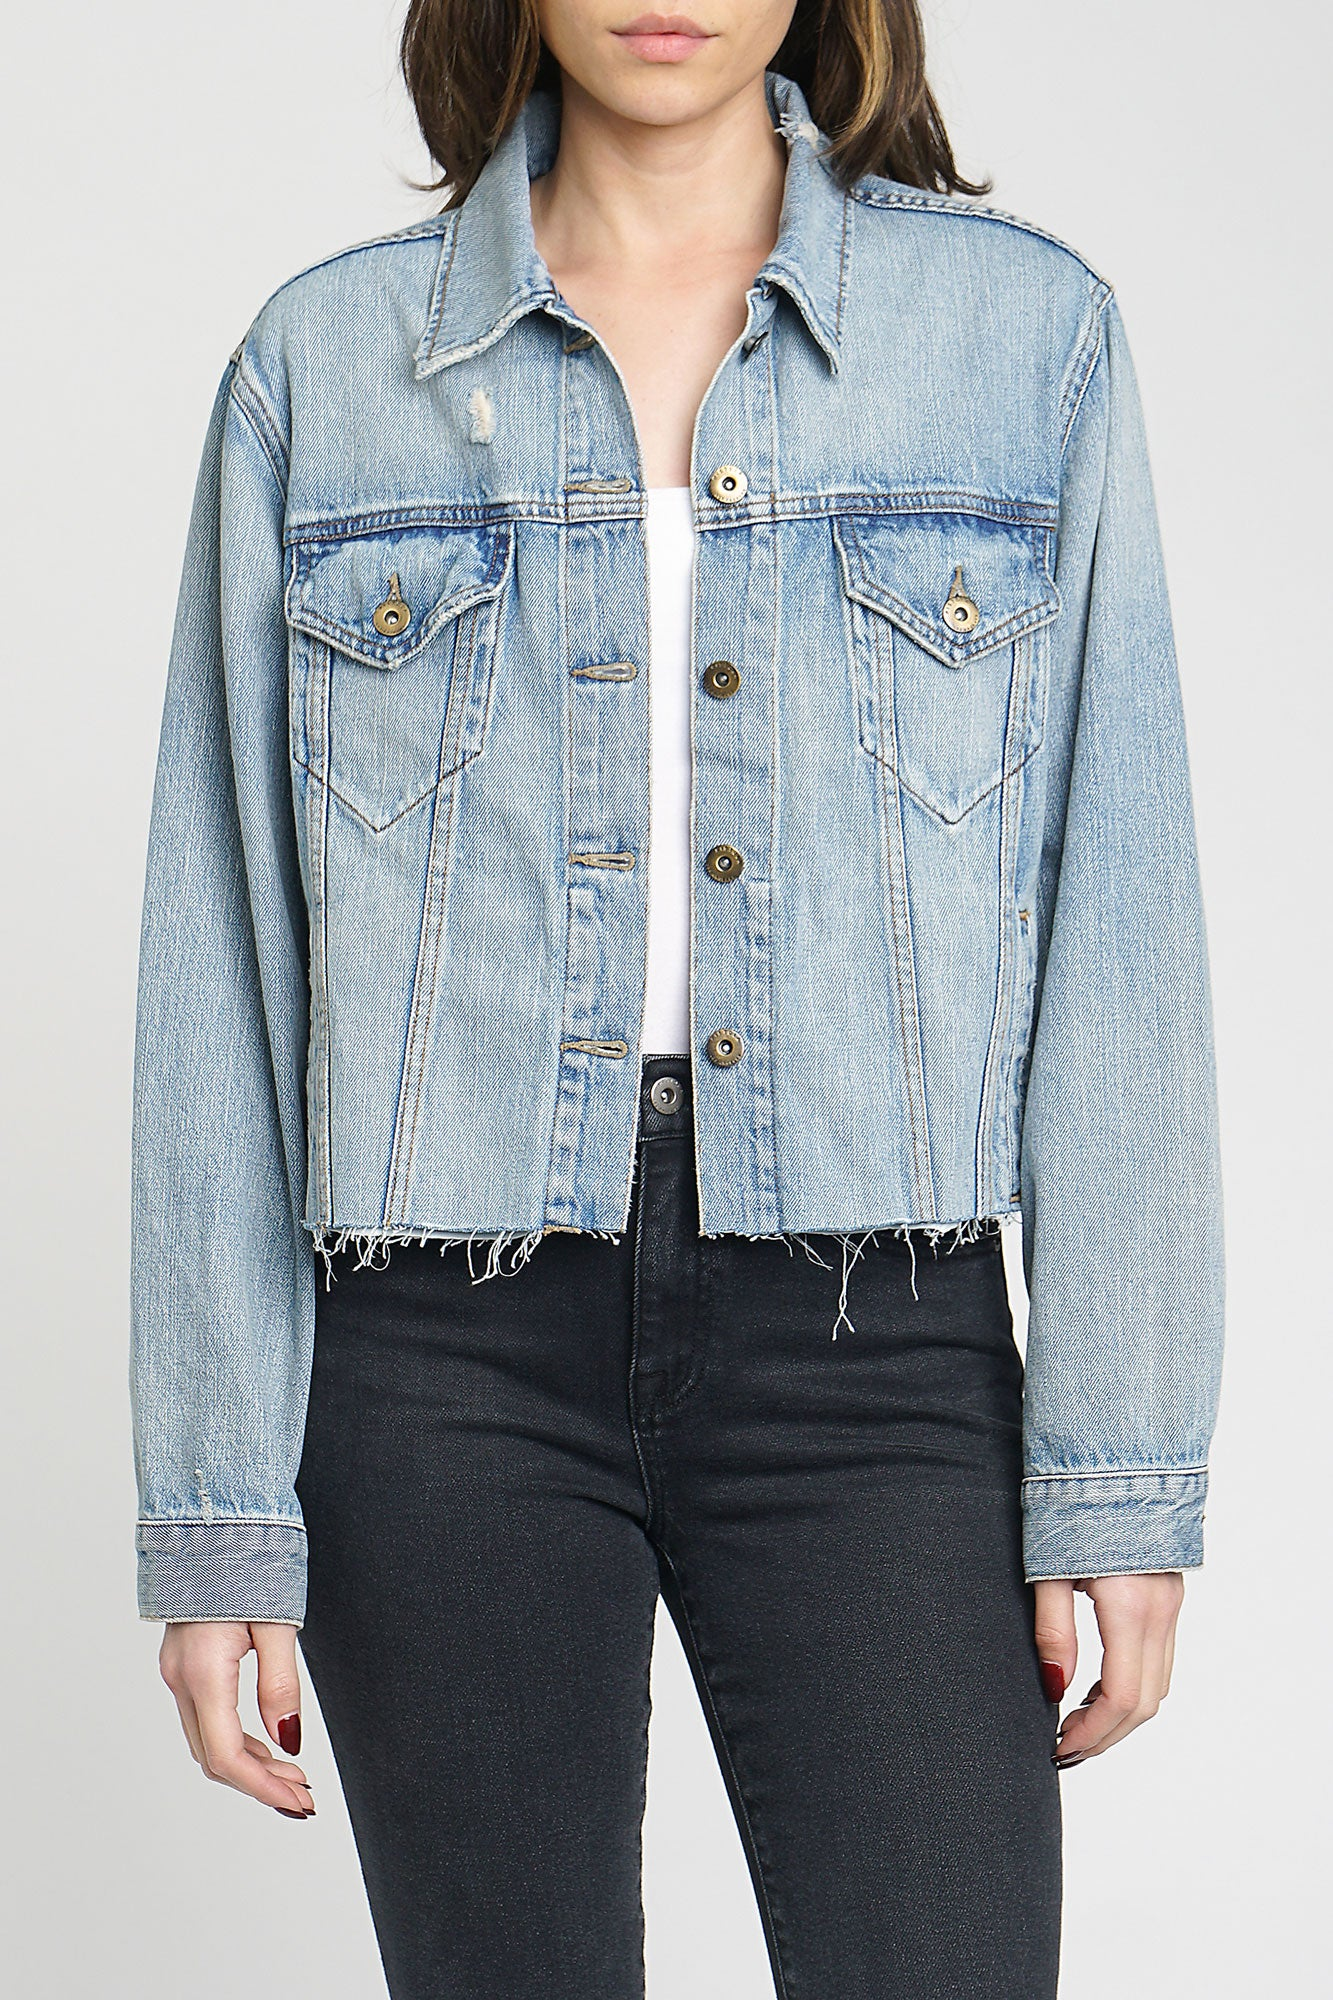 Naya Crop Boyfriend Denim Jacket - Vibes